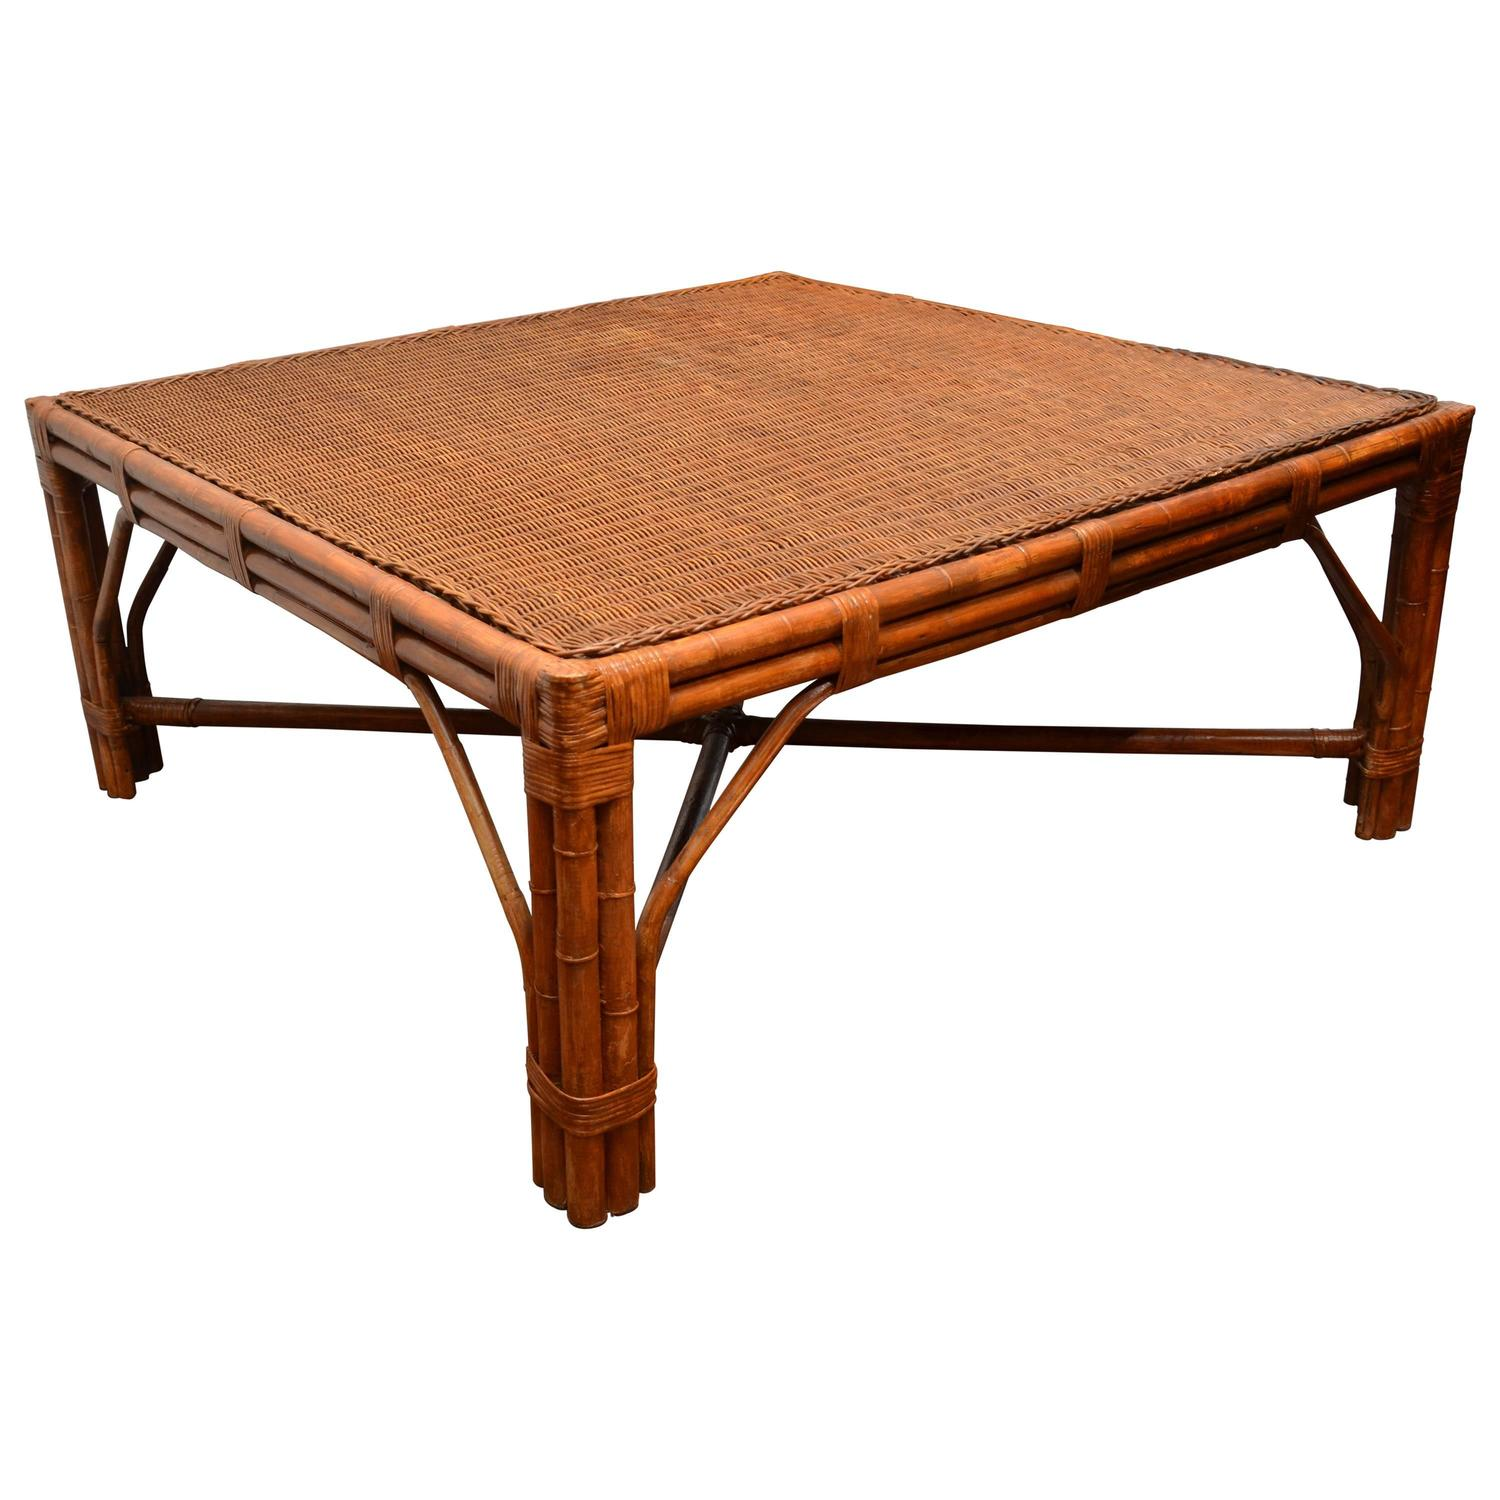 Bamboo coffee table at stdibs